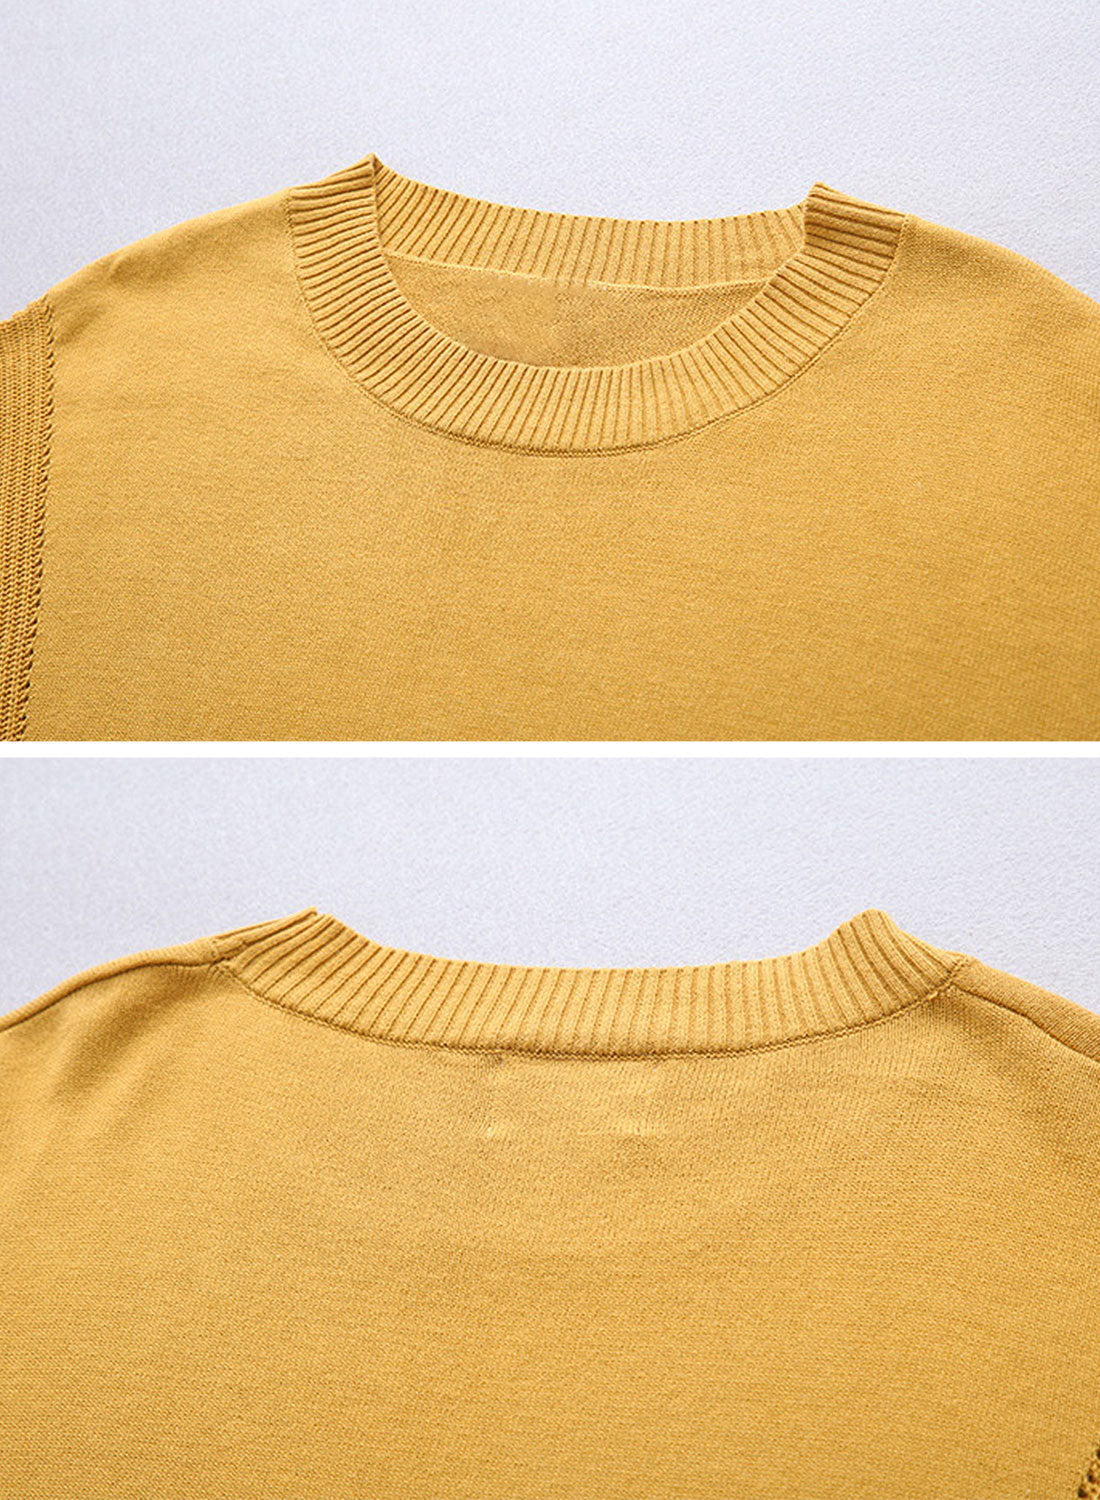 Stitching Sweaters with Side Printing Details 1